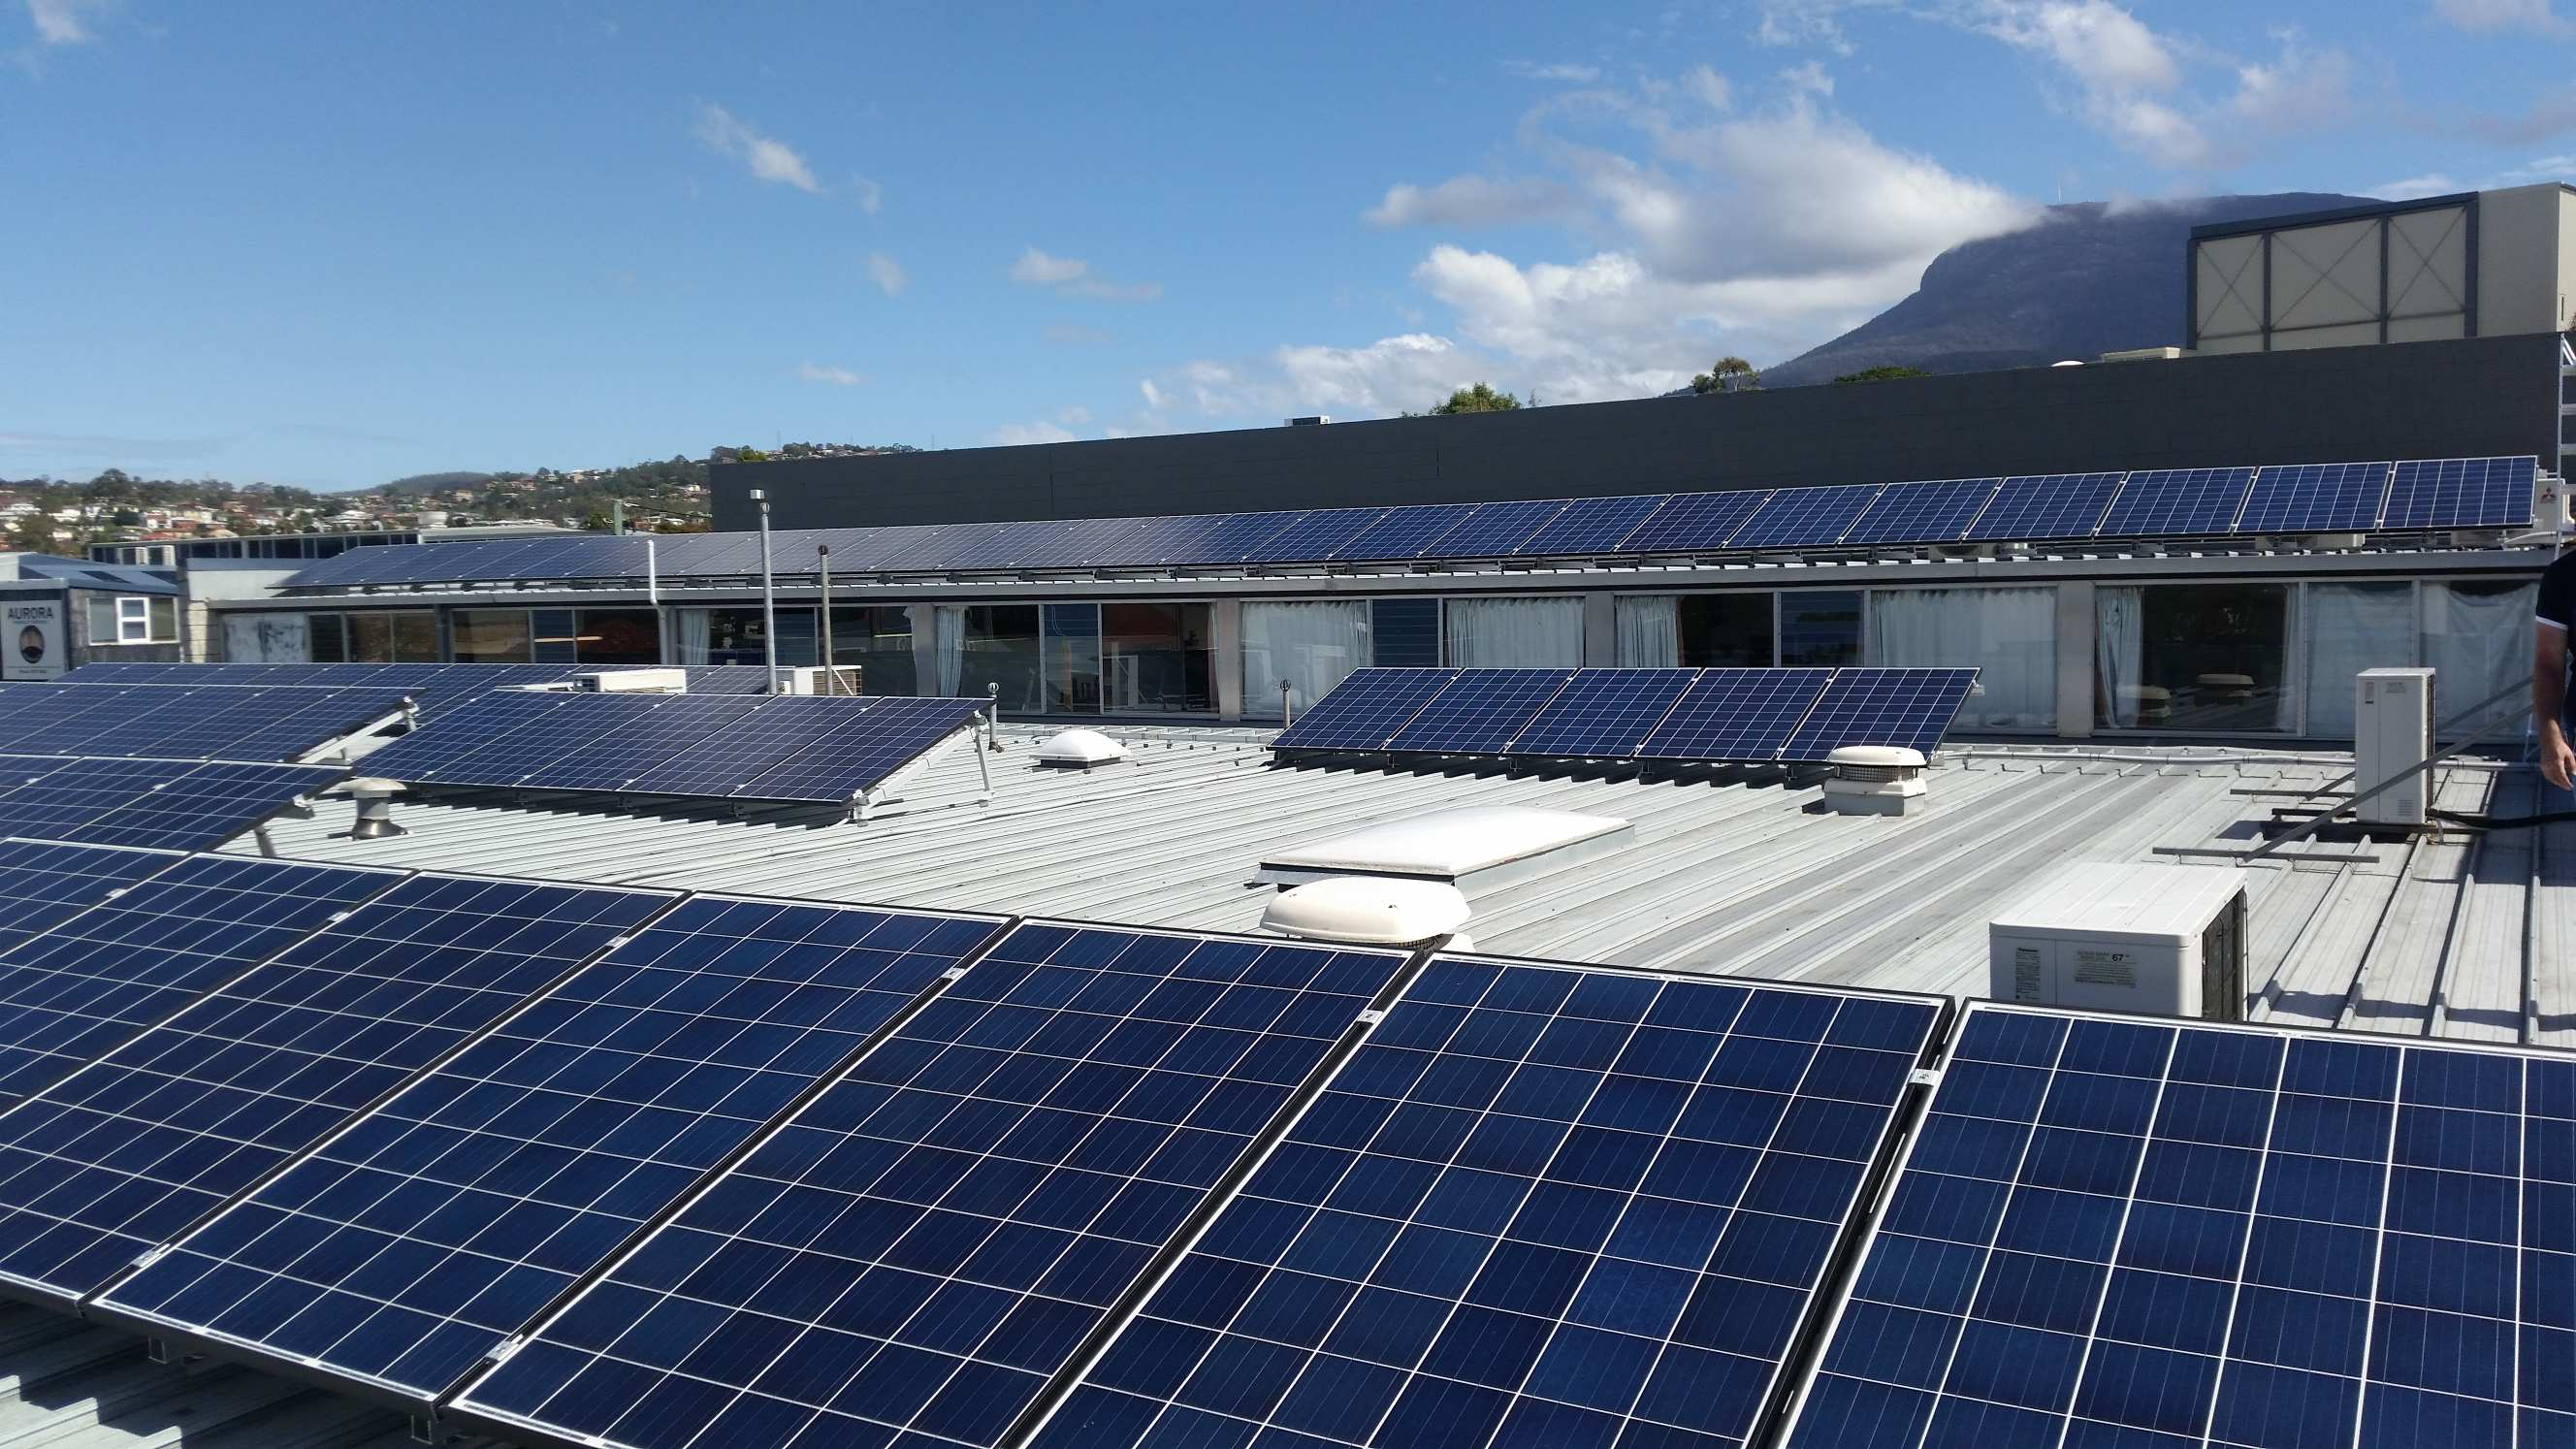 Tastex factory roof with solar panbels